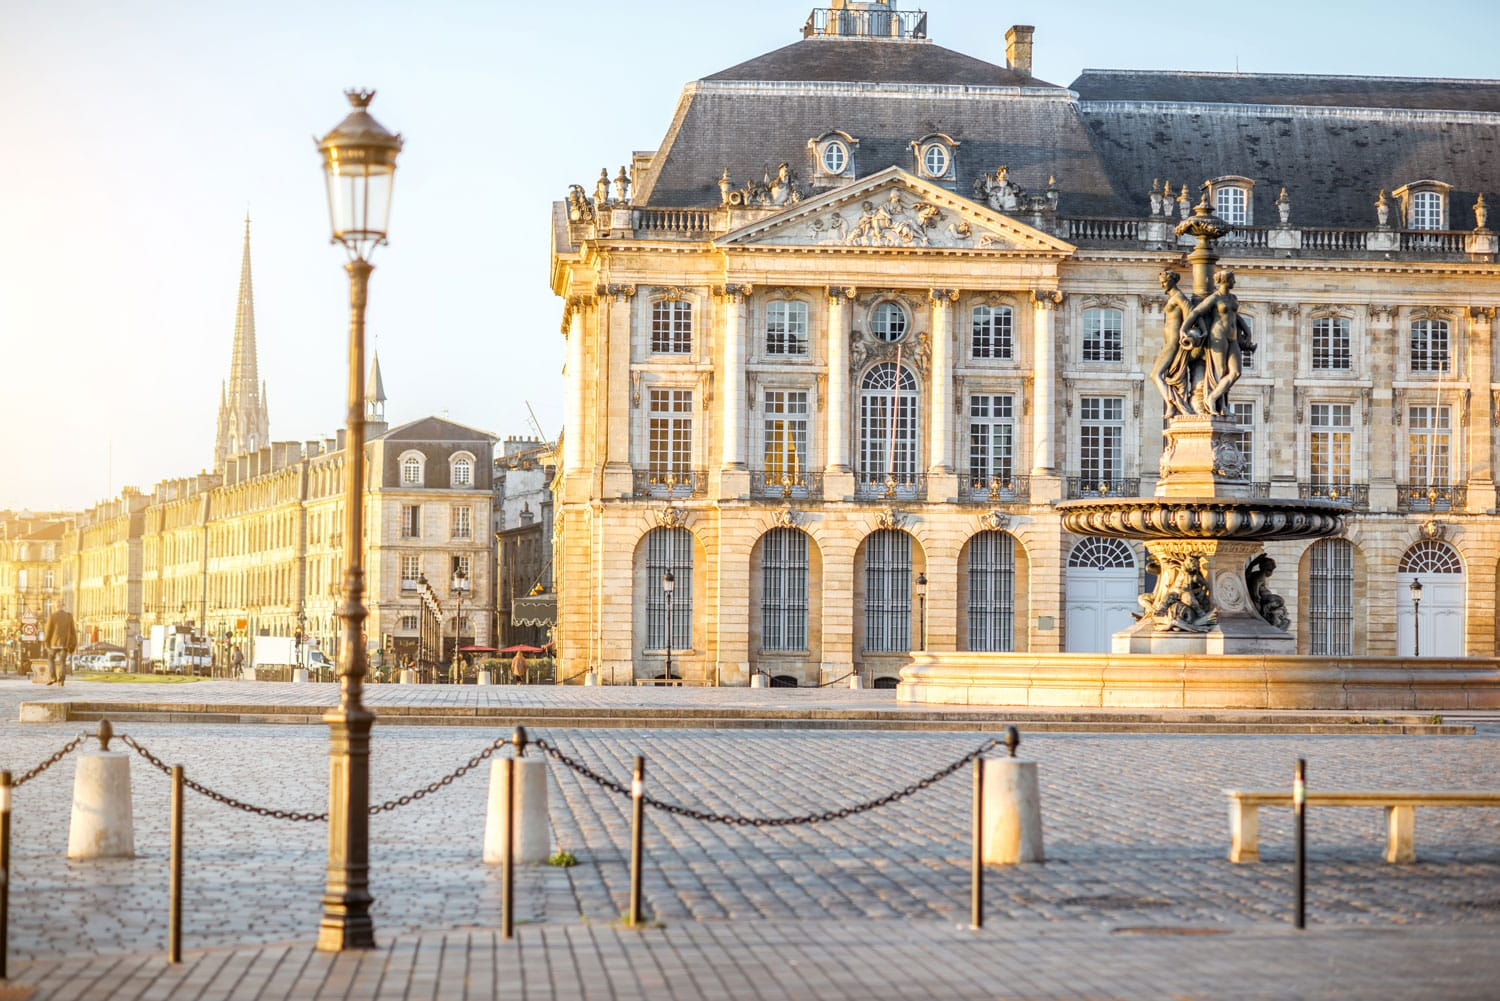 View on the famous La Bourse square with fountain during the morning in Bordeaux city, France